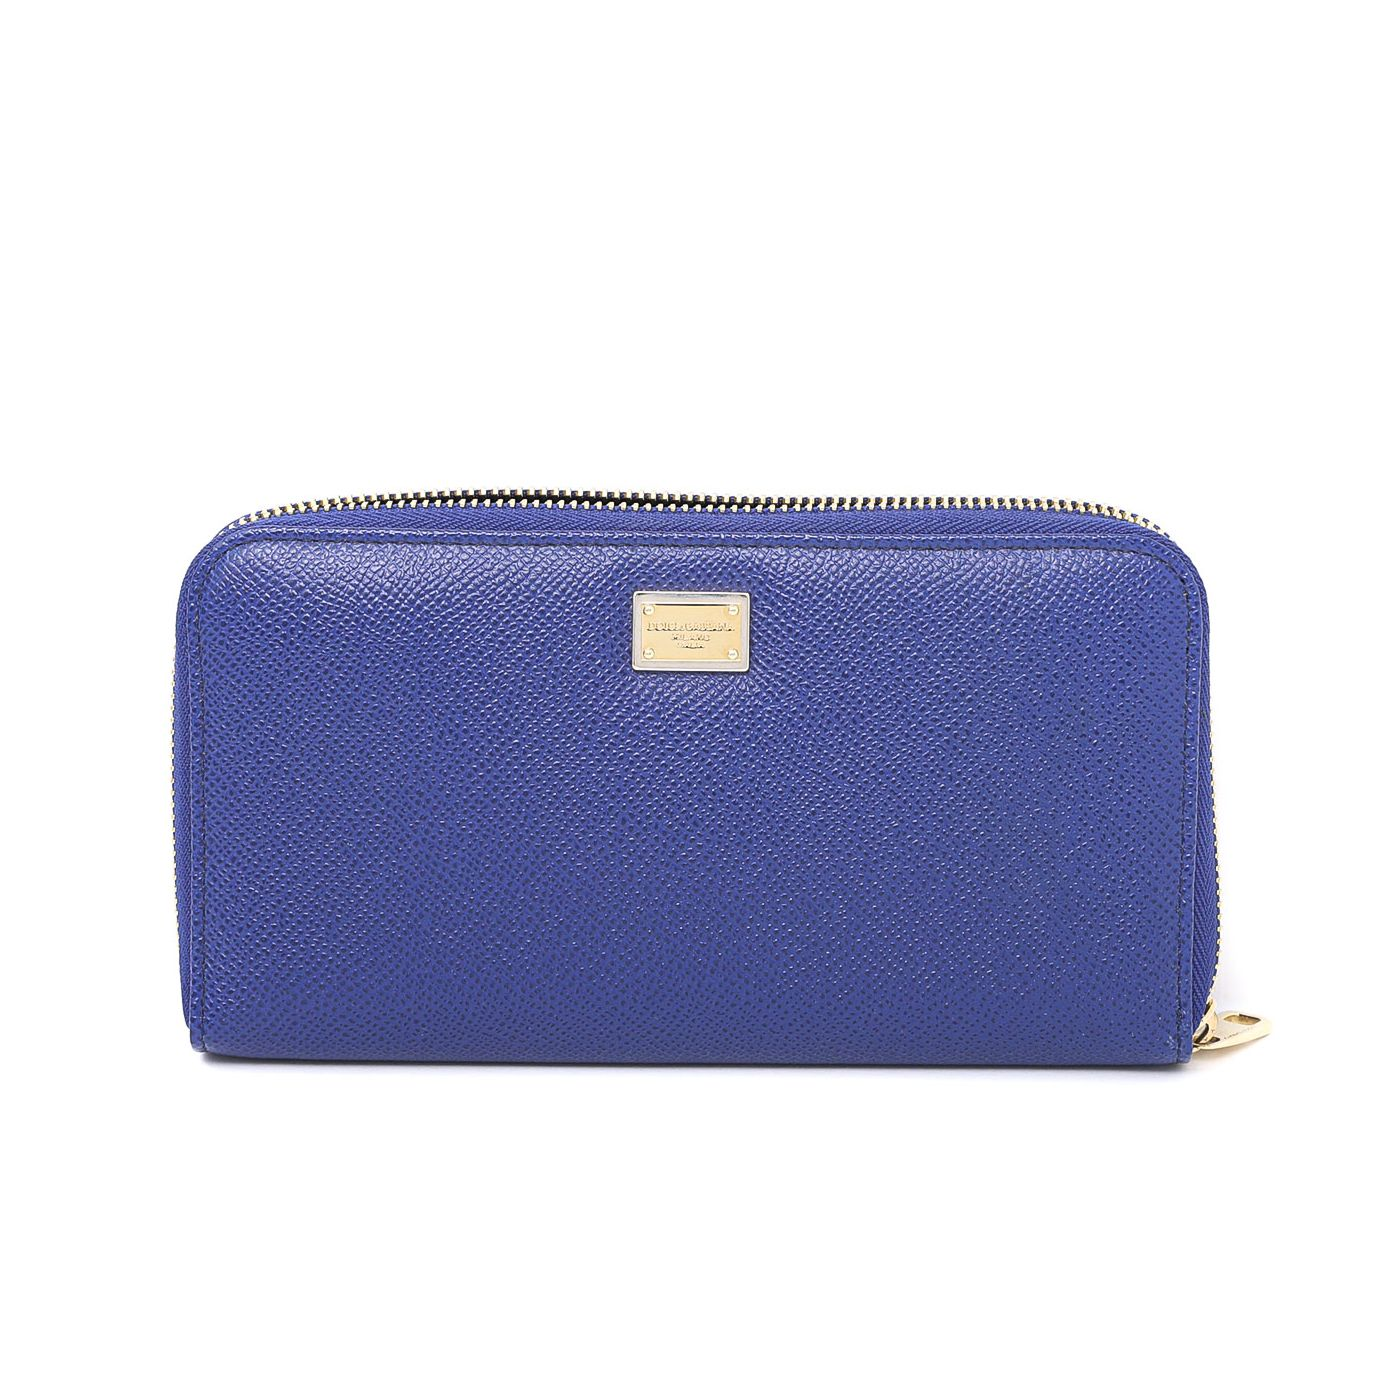 Dolce & Gabbana Electric Blue Zip Around Wallet